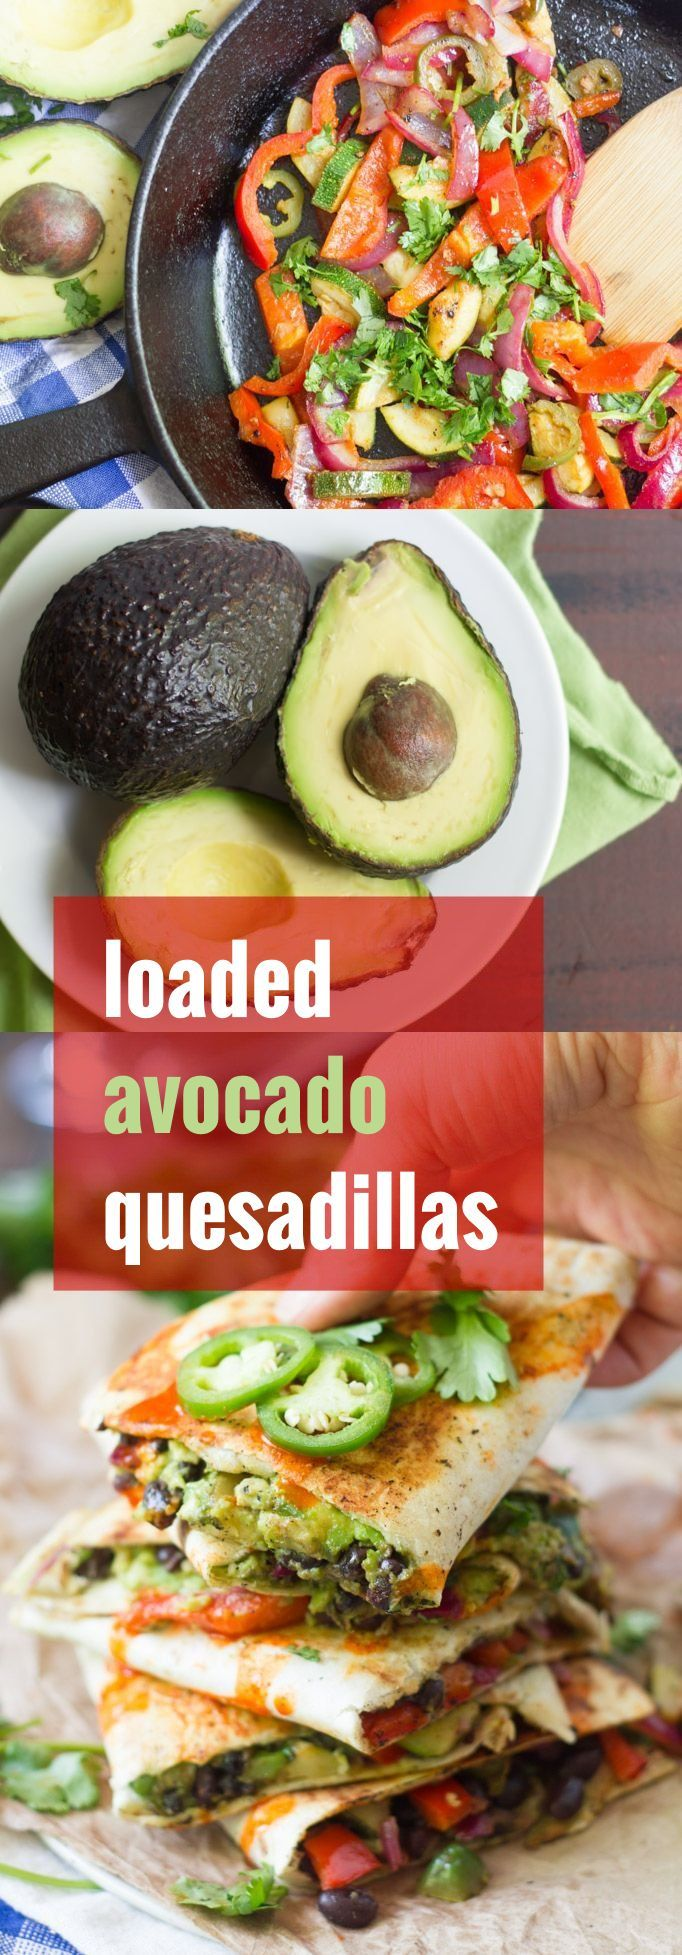 Crispy on the outside, stuffed with creamy avocado and flavor-packed veggies, these dairy-free, fully loaded avocado quesadillas are sure to be a hit! #VidaAguacate #ad